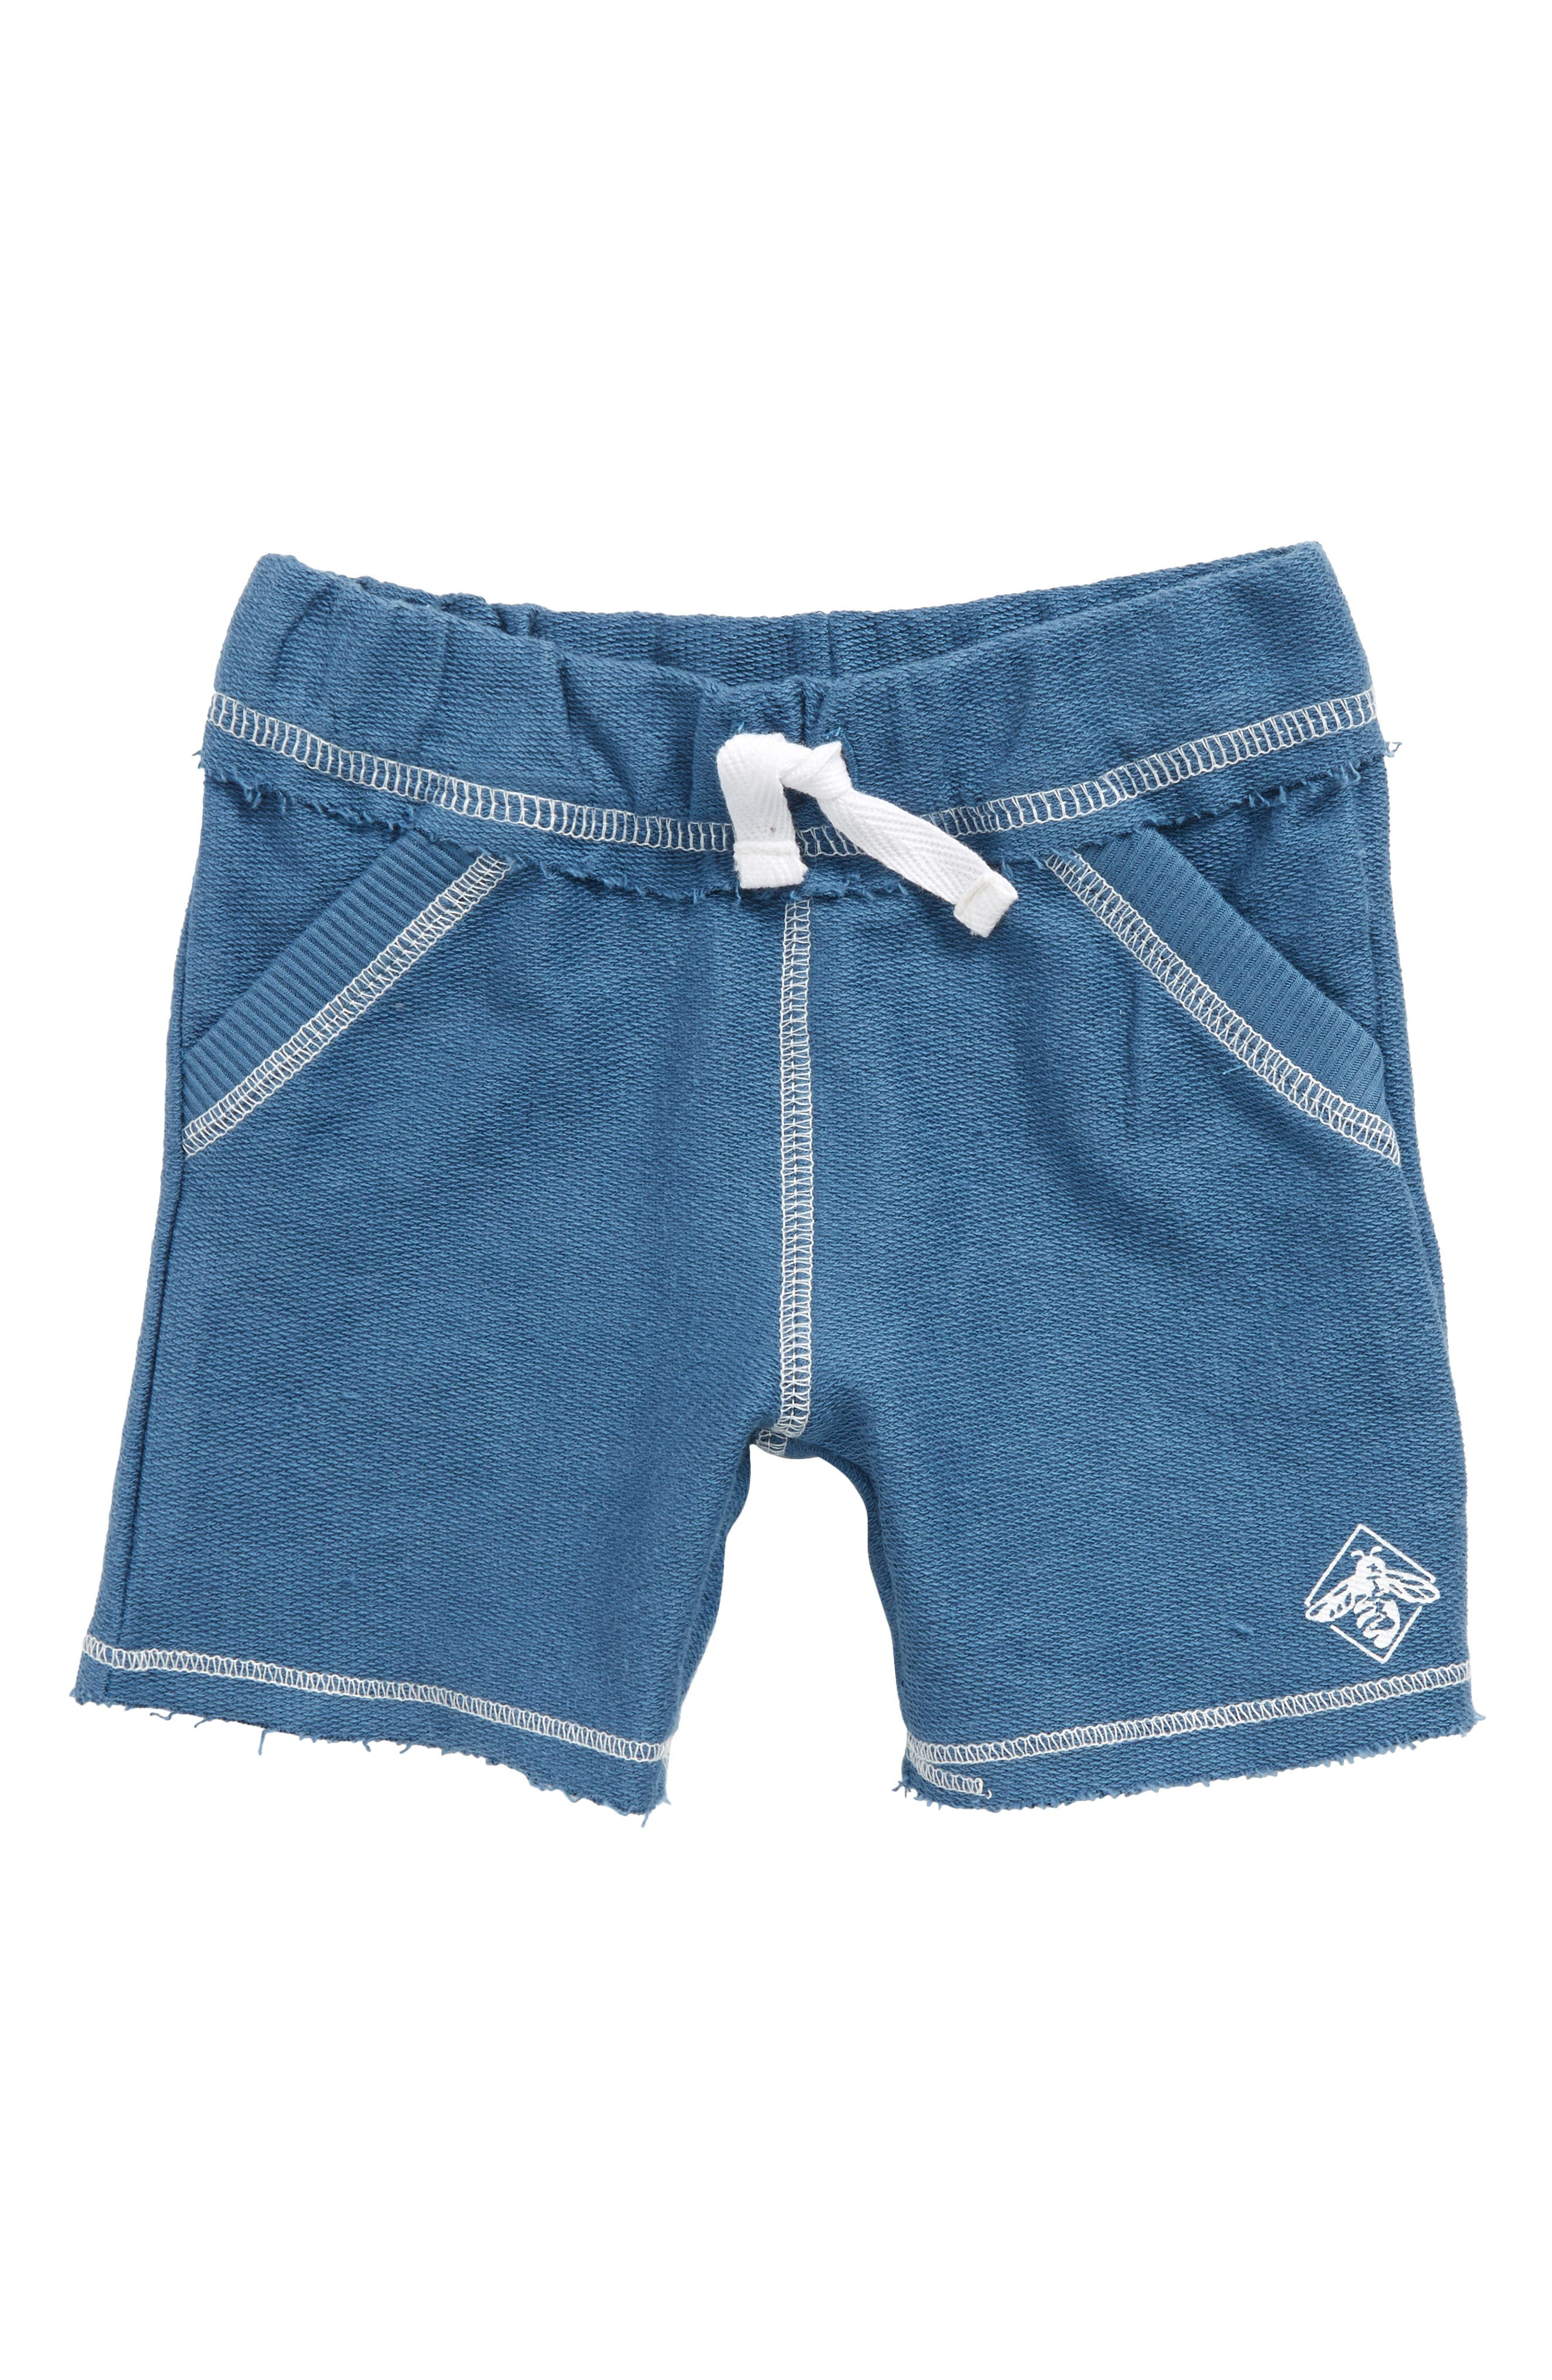 Burt's Bees Baby Organic Cotton French Terry Shorts (Baby Boys)